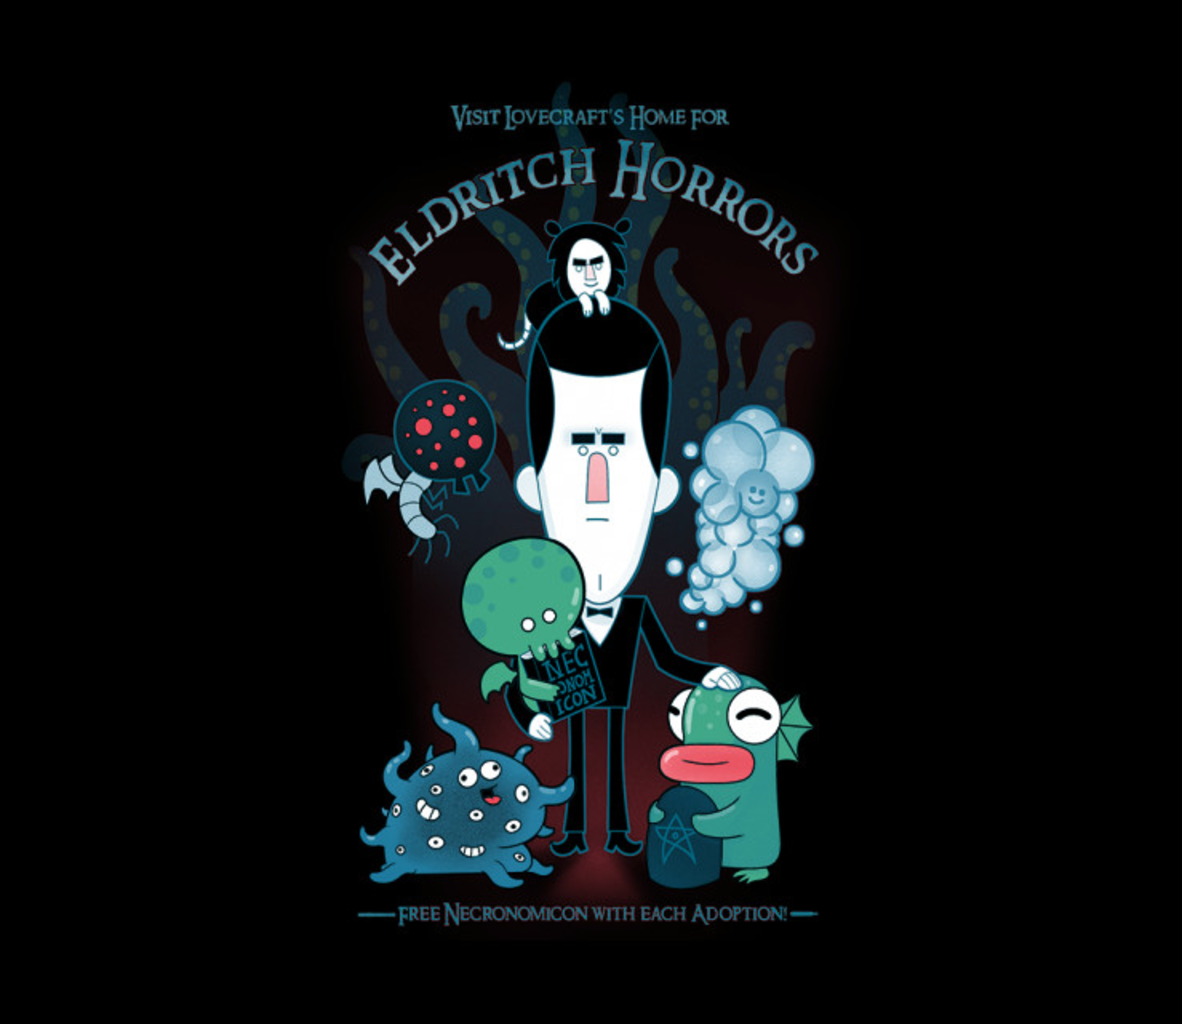 TeeFury: Lovecraft's Unspeakable Home